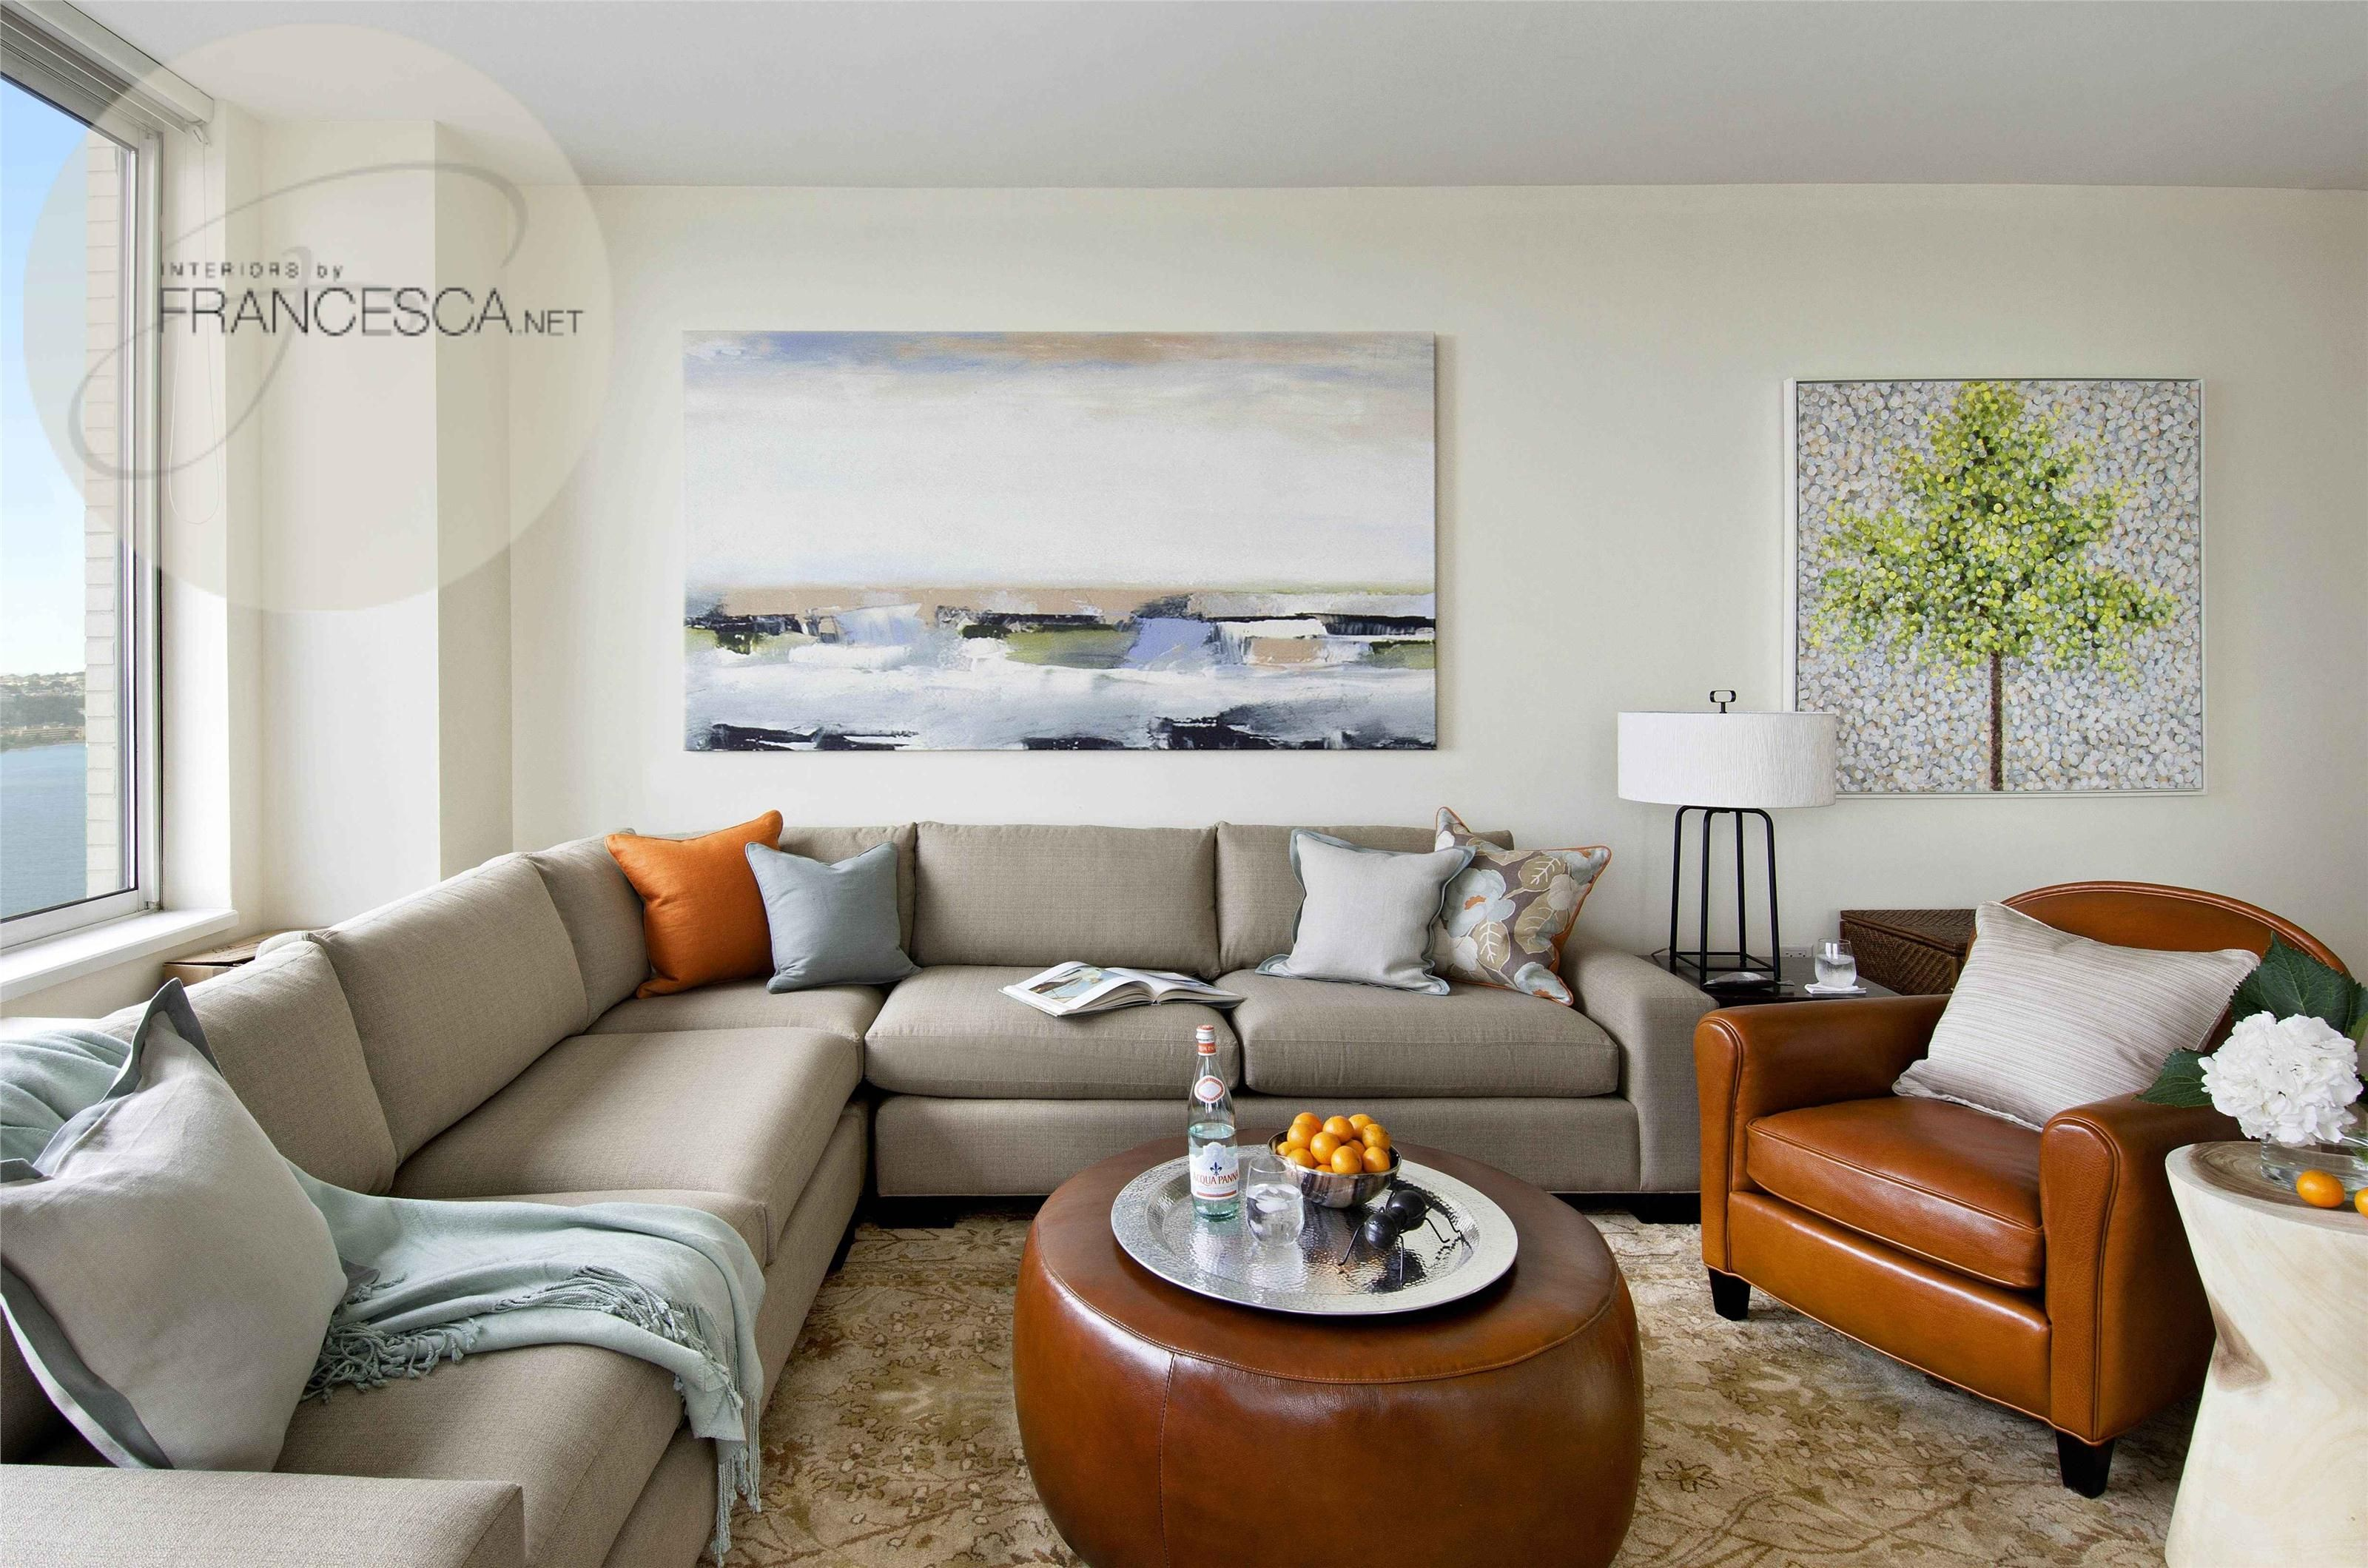 Enchanting Eclectic Living Room Images Design Ideas: Casual Chic ...